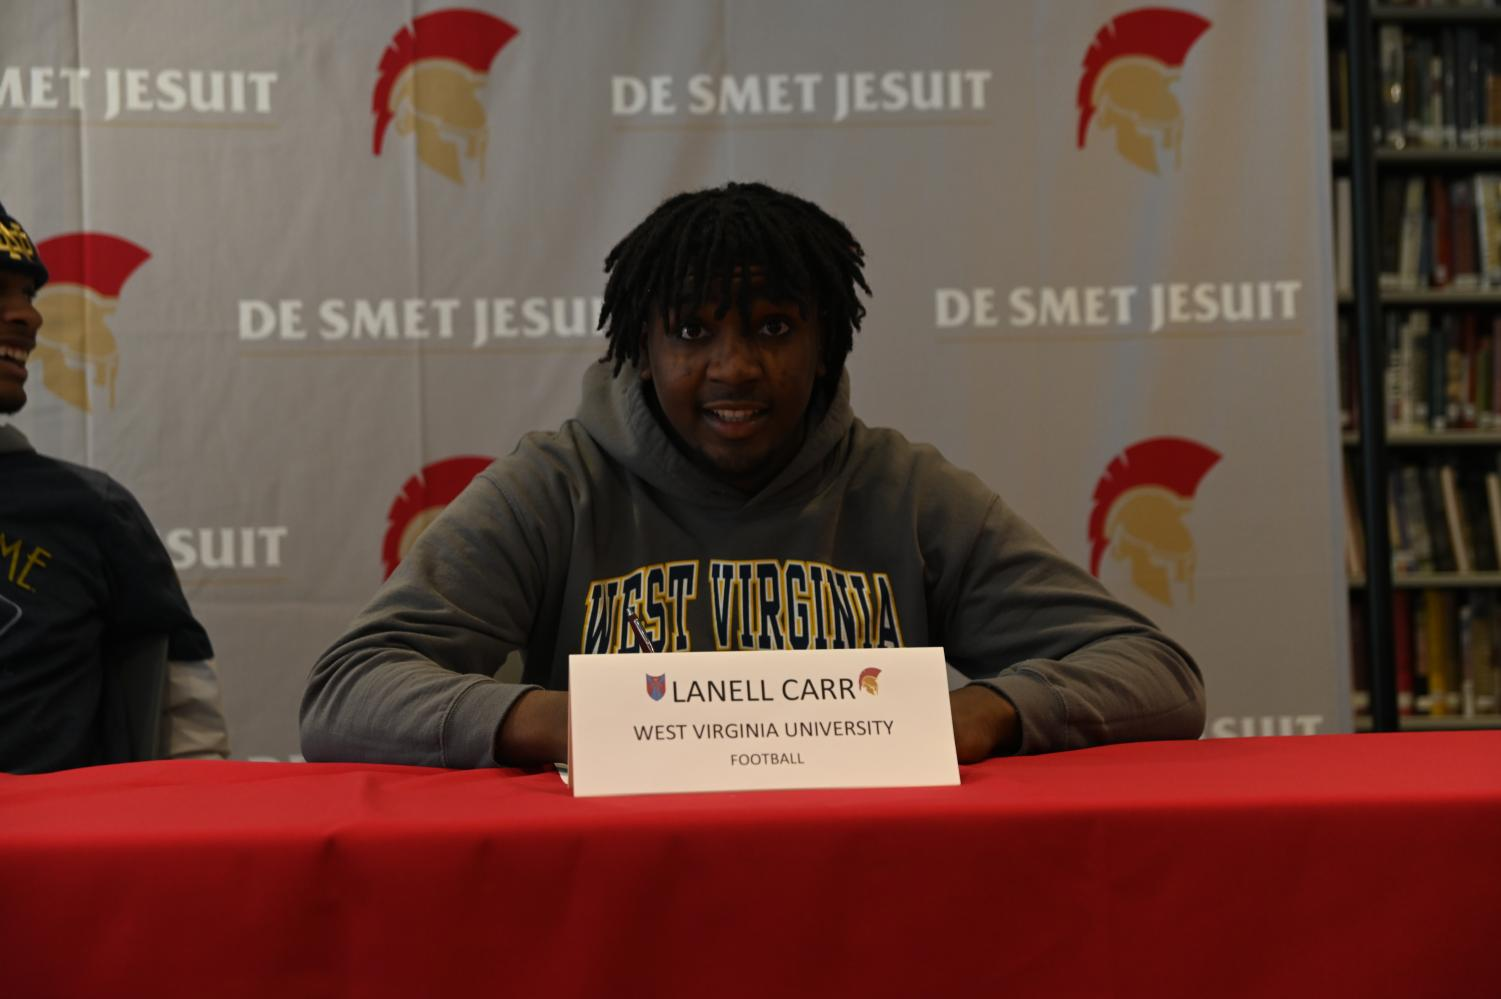 Senior Lanell Carr poses for a photo prior to signing to West Virginia University.